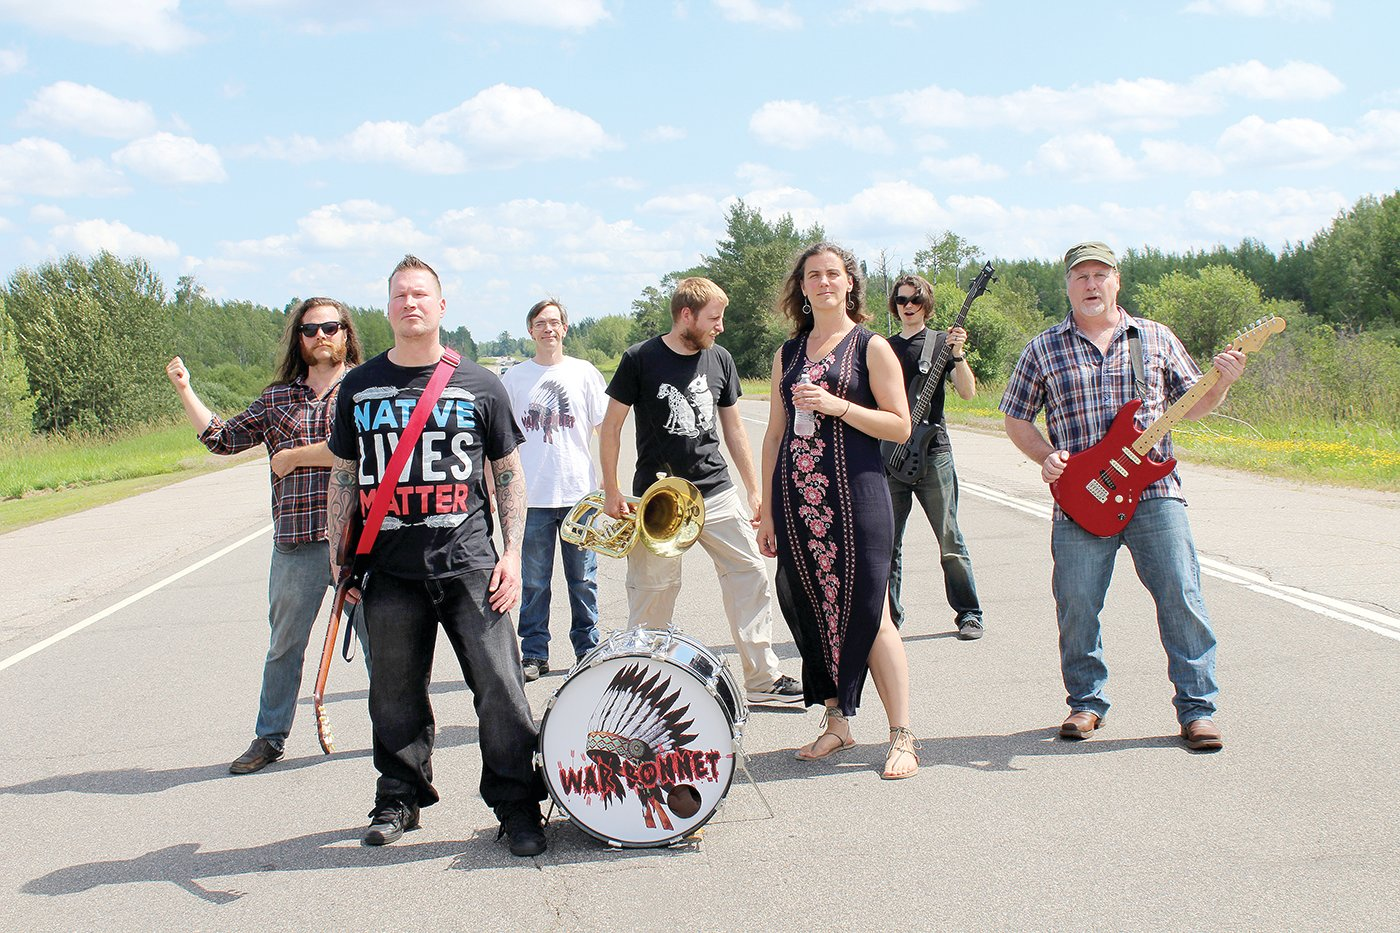 War Bonnet and their performance ensemble. Left to right are: Tom Frichek, Chaz Wagner, Tony Parson, Alex Mahne, Becky Frichek, Sean Zarn and Eric Krenz.